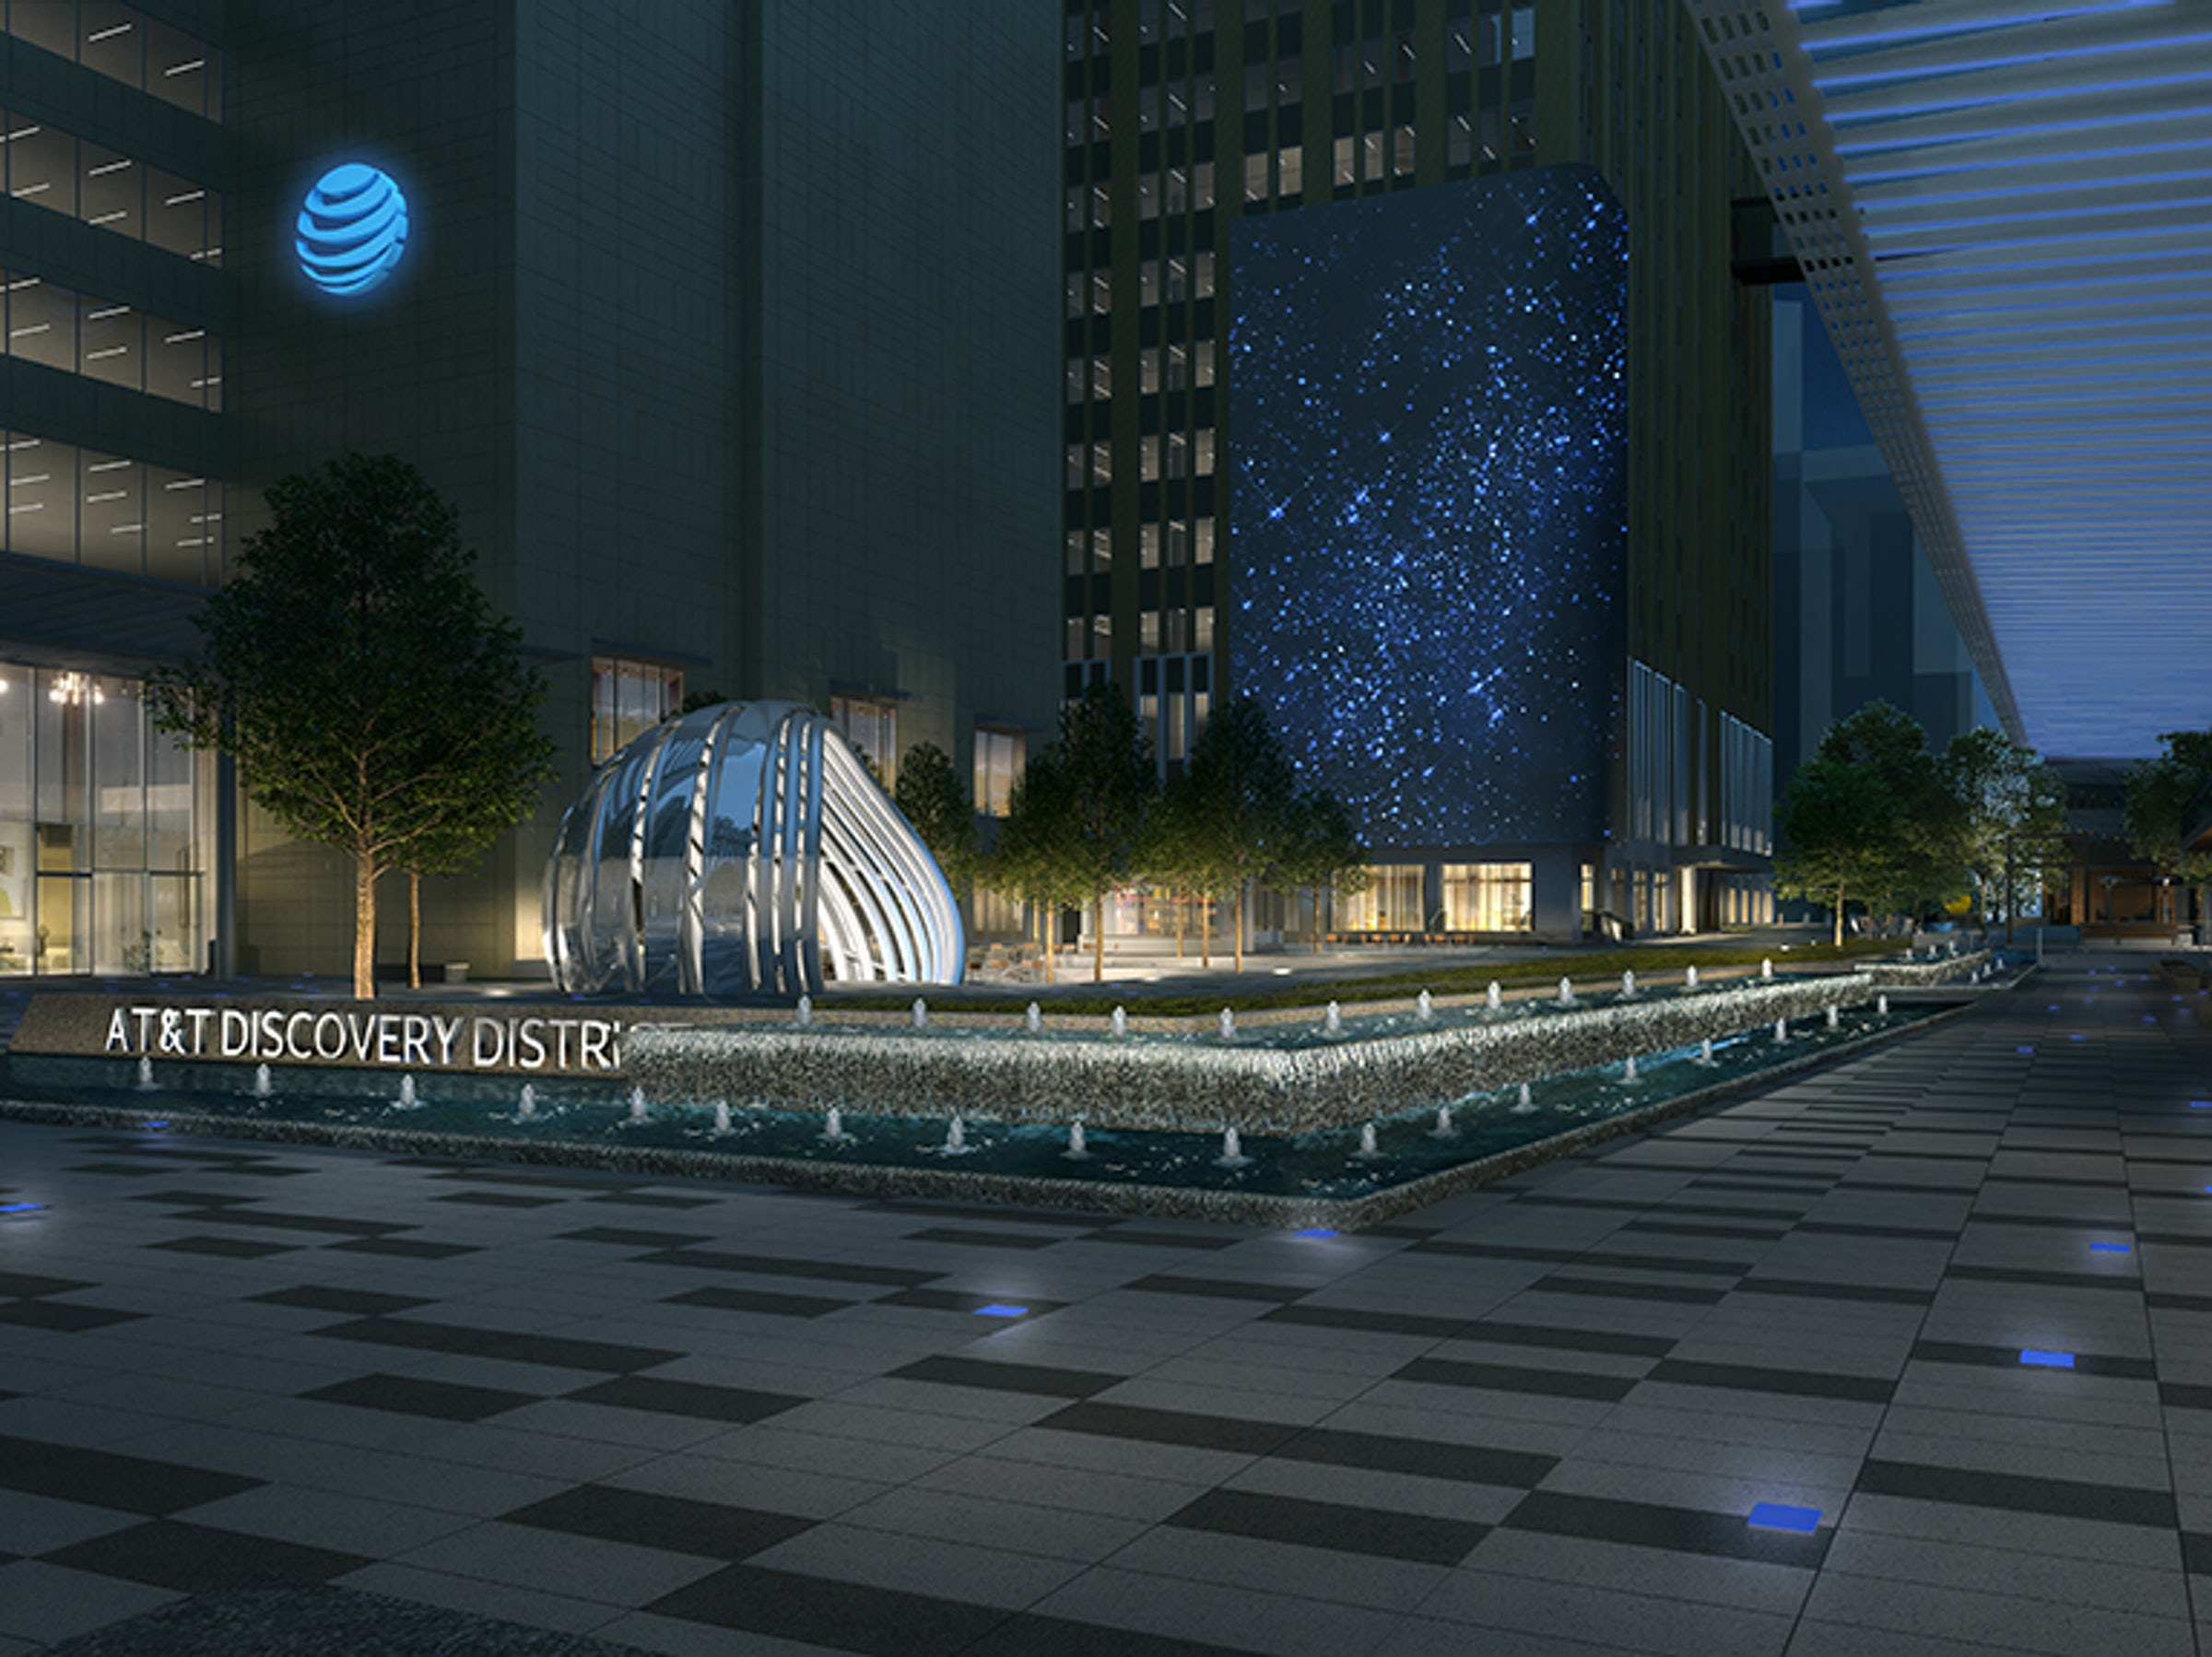 AT&T Discovery District in Beyond Dallas